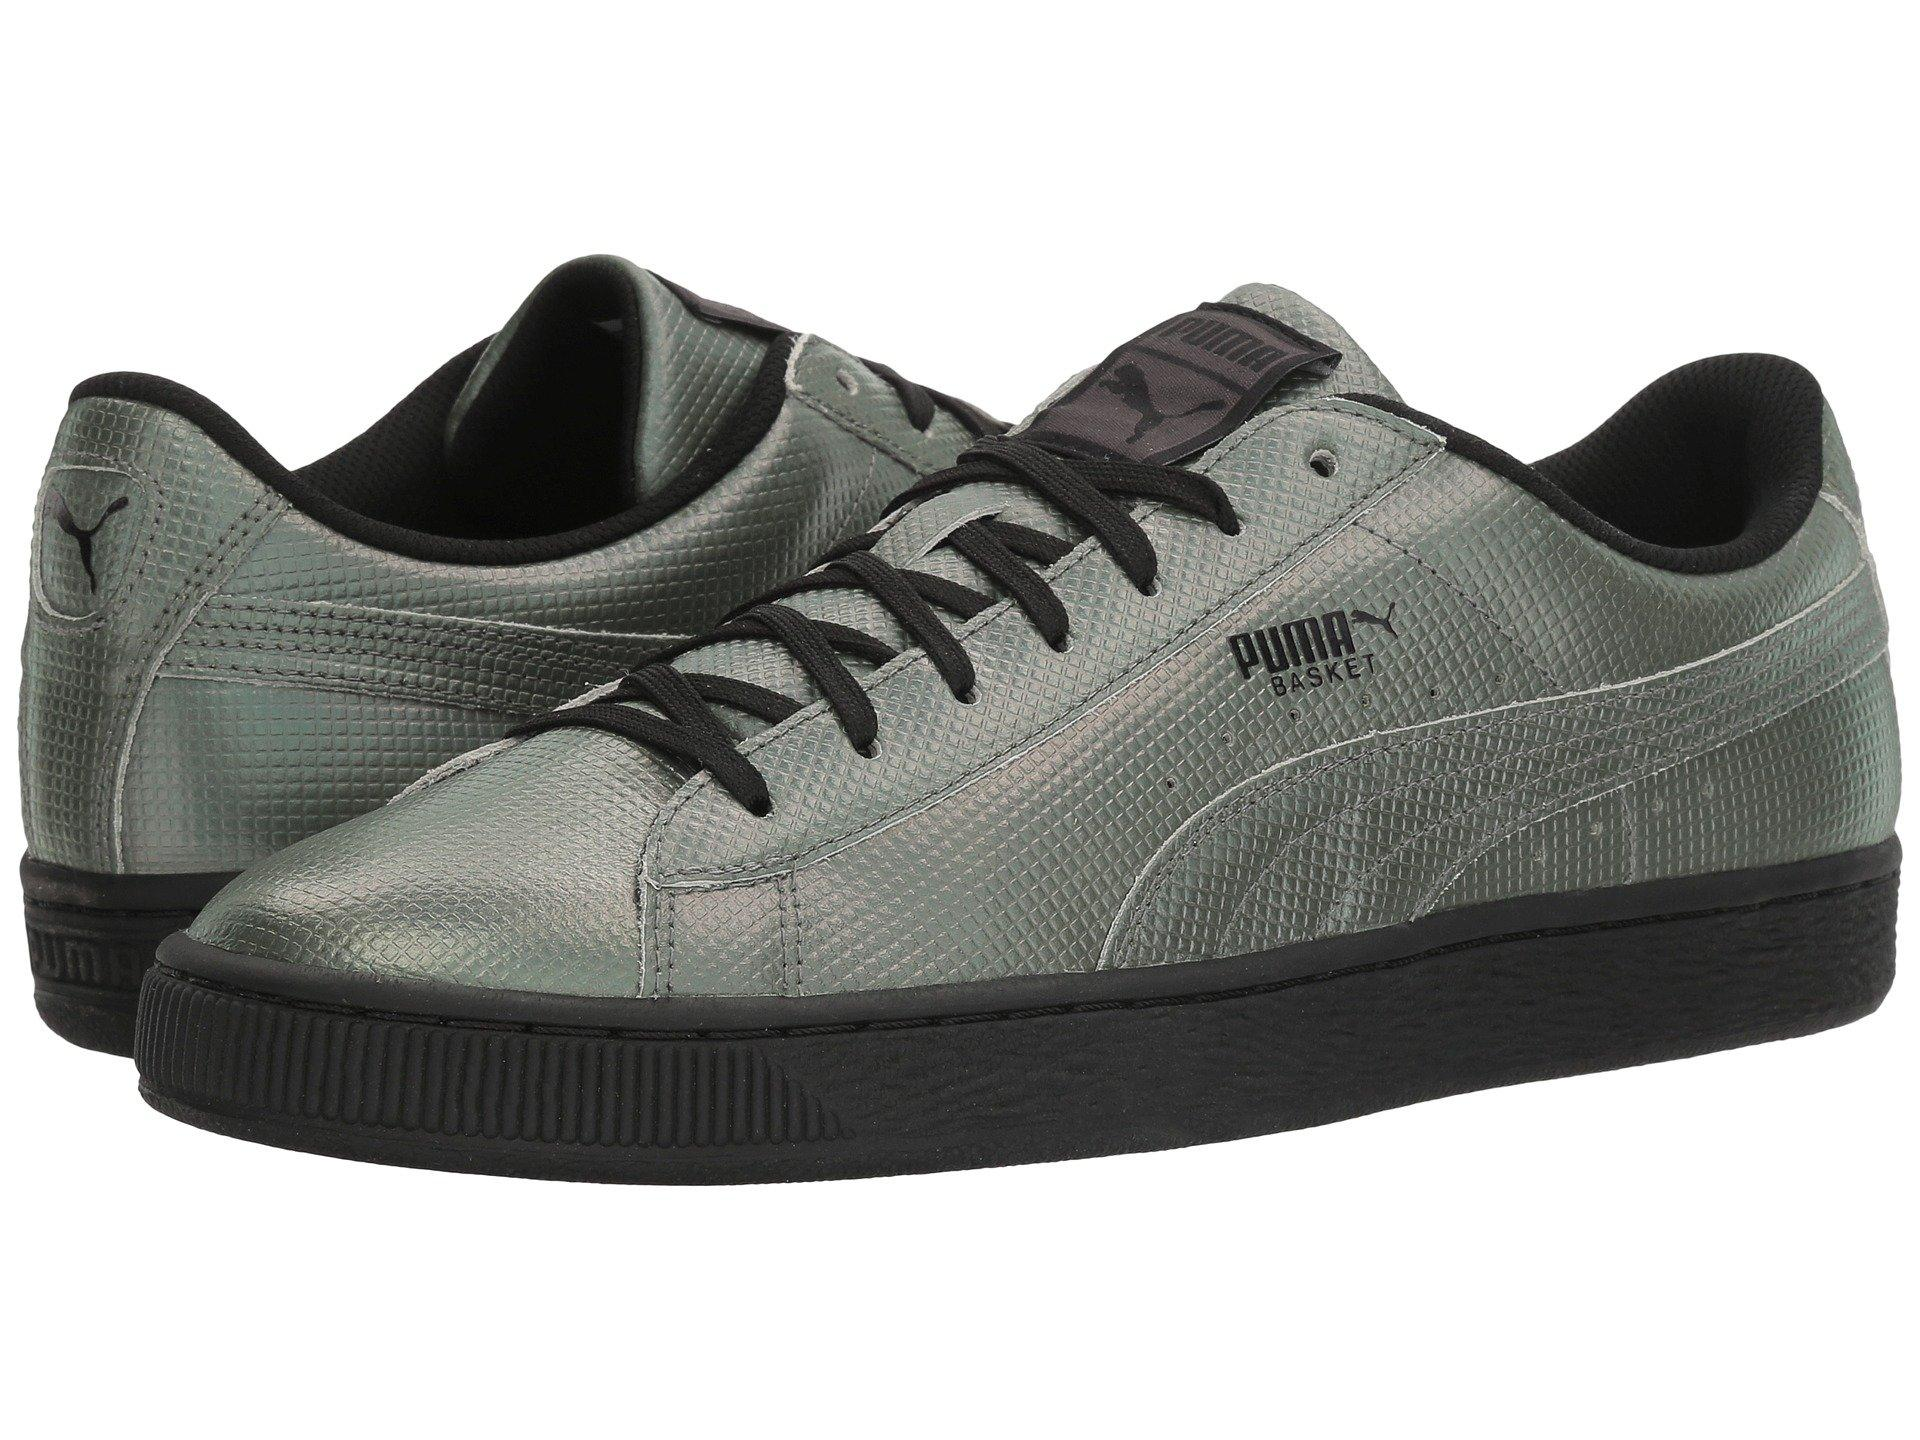 los angeles 23df0 7aab5 Puma Basket Classic Holographic In Black | ModeSens